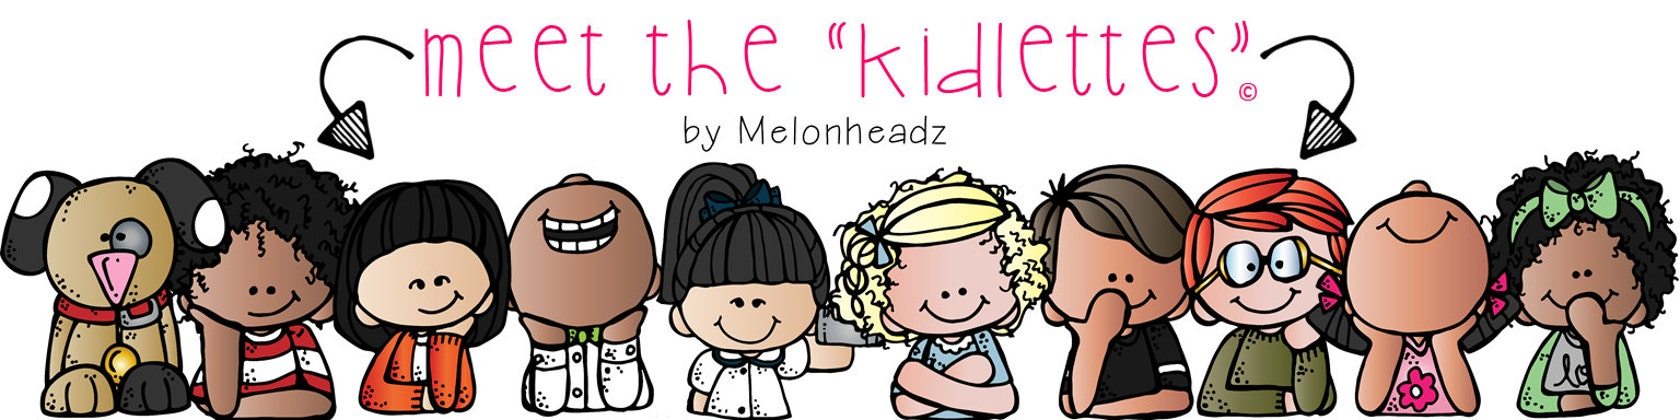 Melonheadz Illustrating Clip Art By Melonheadzclipart On Etsy